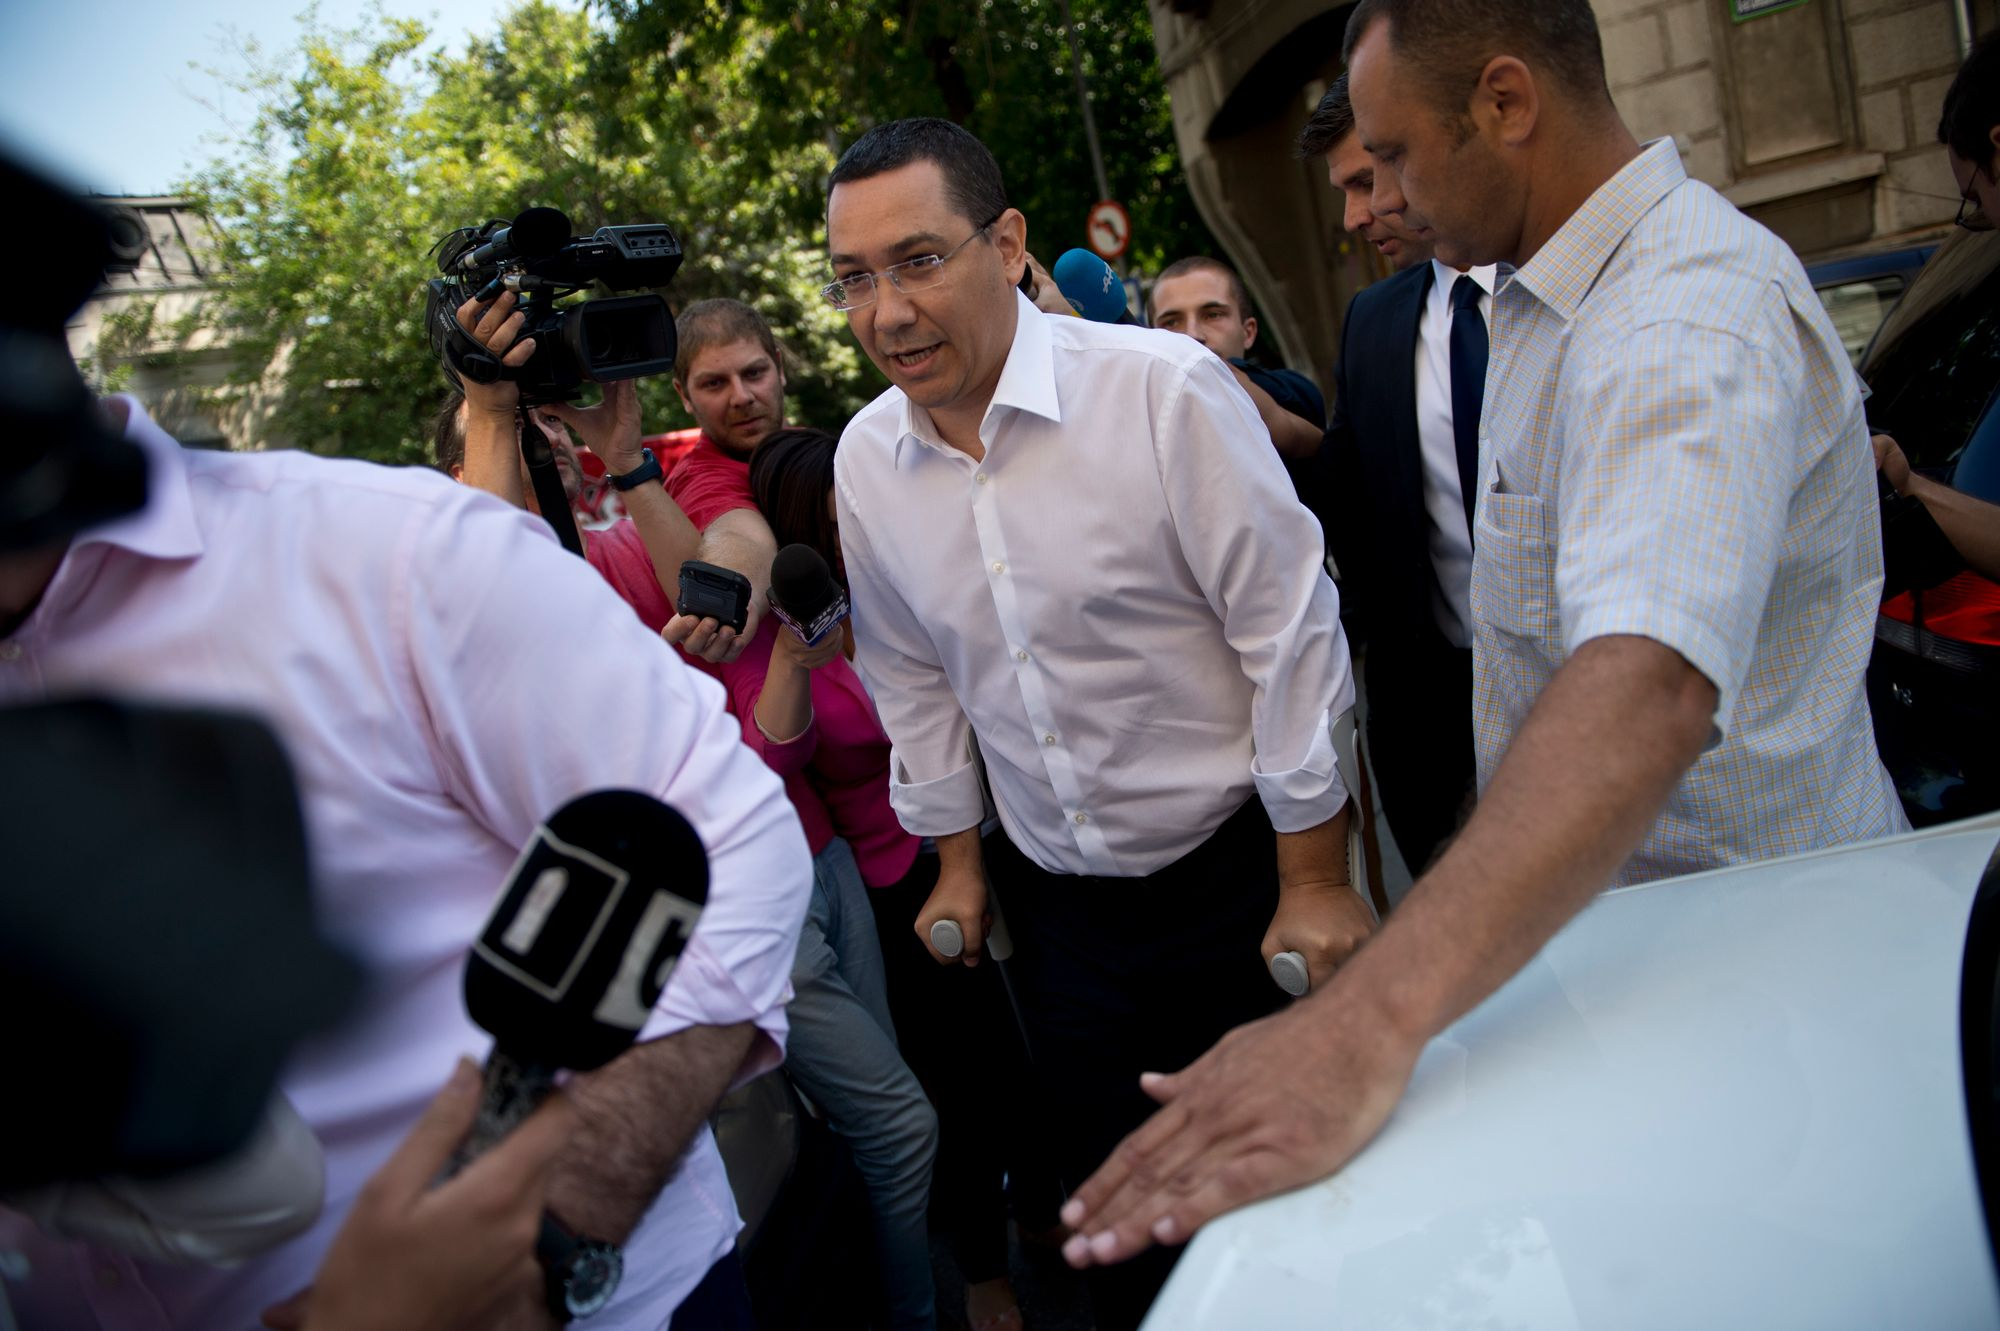 Le leader roumain Victor Ponta devant le siège du Parquet anticorruption (DNA) à Bucarest, le 13 juillet 2015.